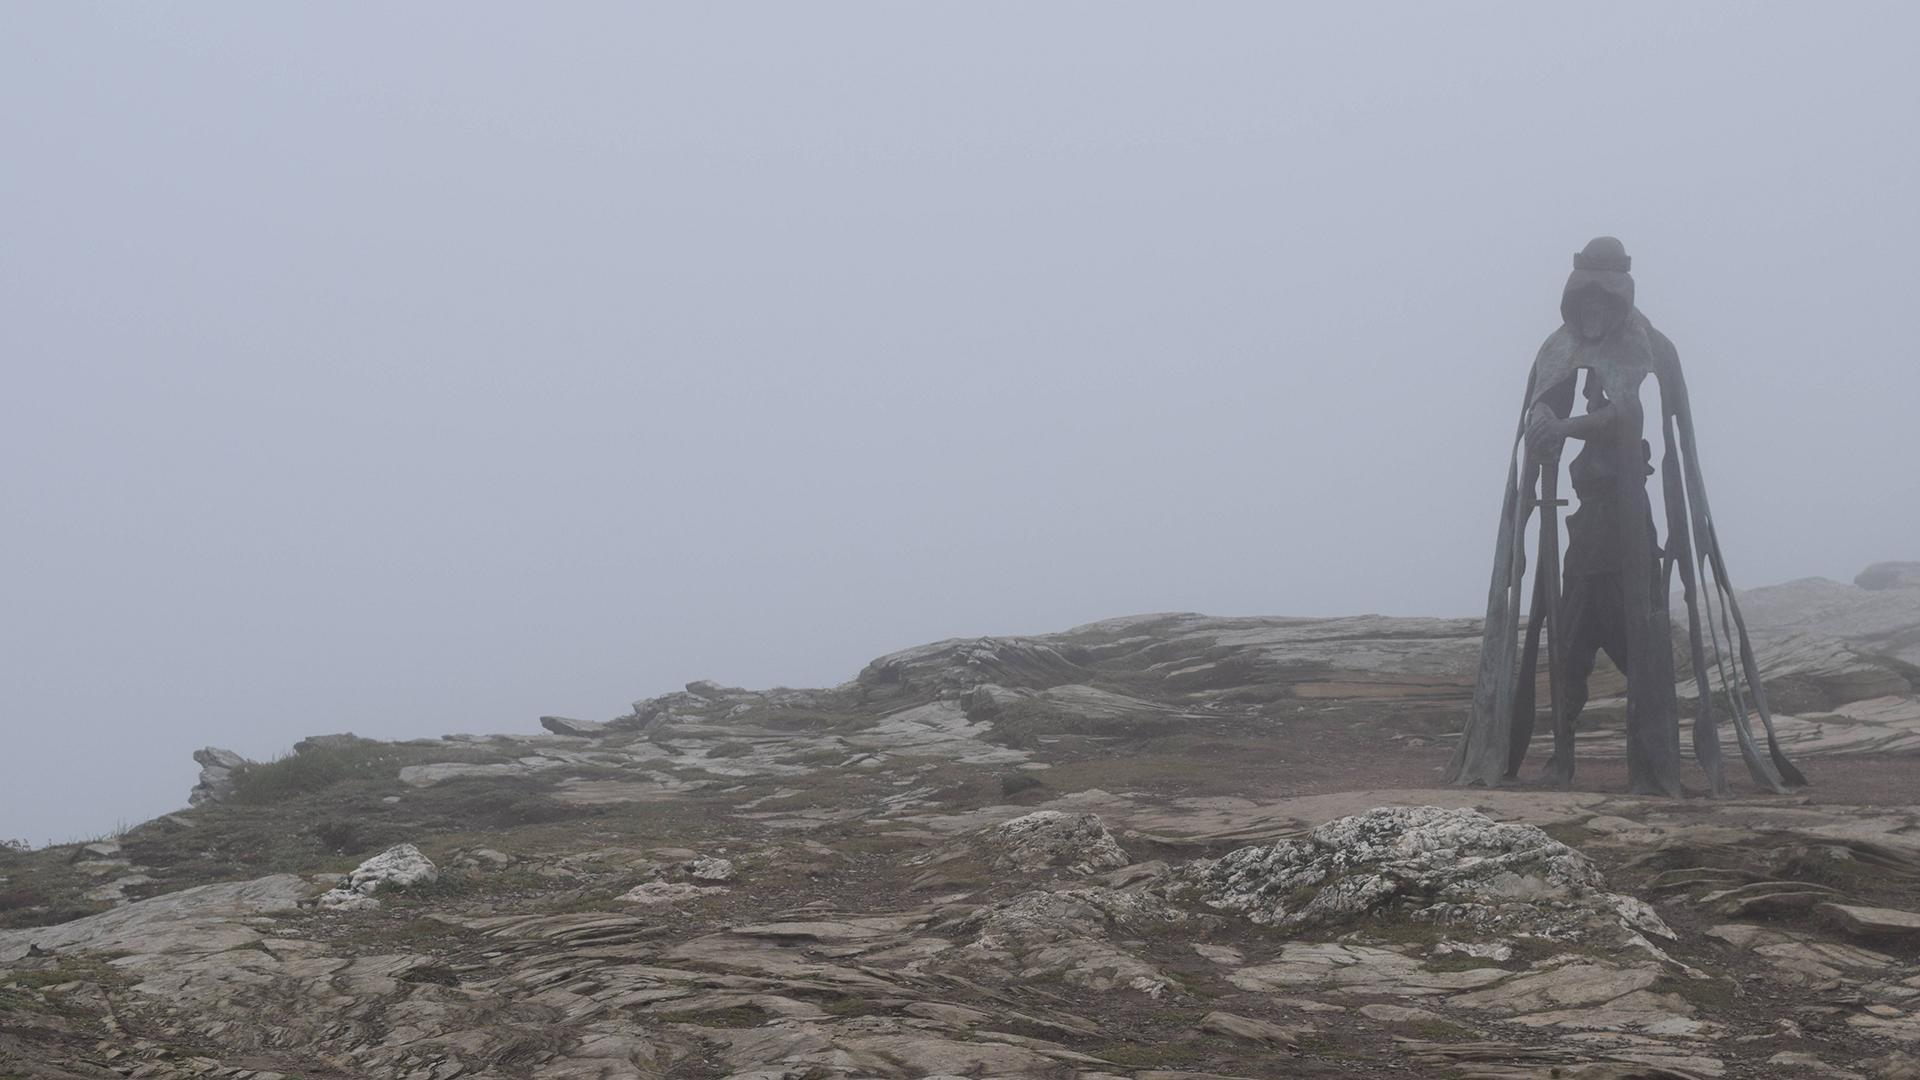 1920x1080] King Arthur Statue in Mist : wallpapers